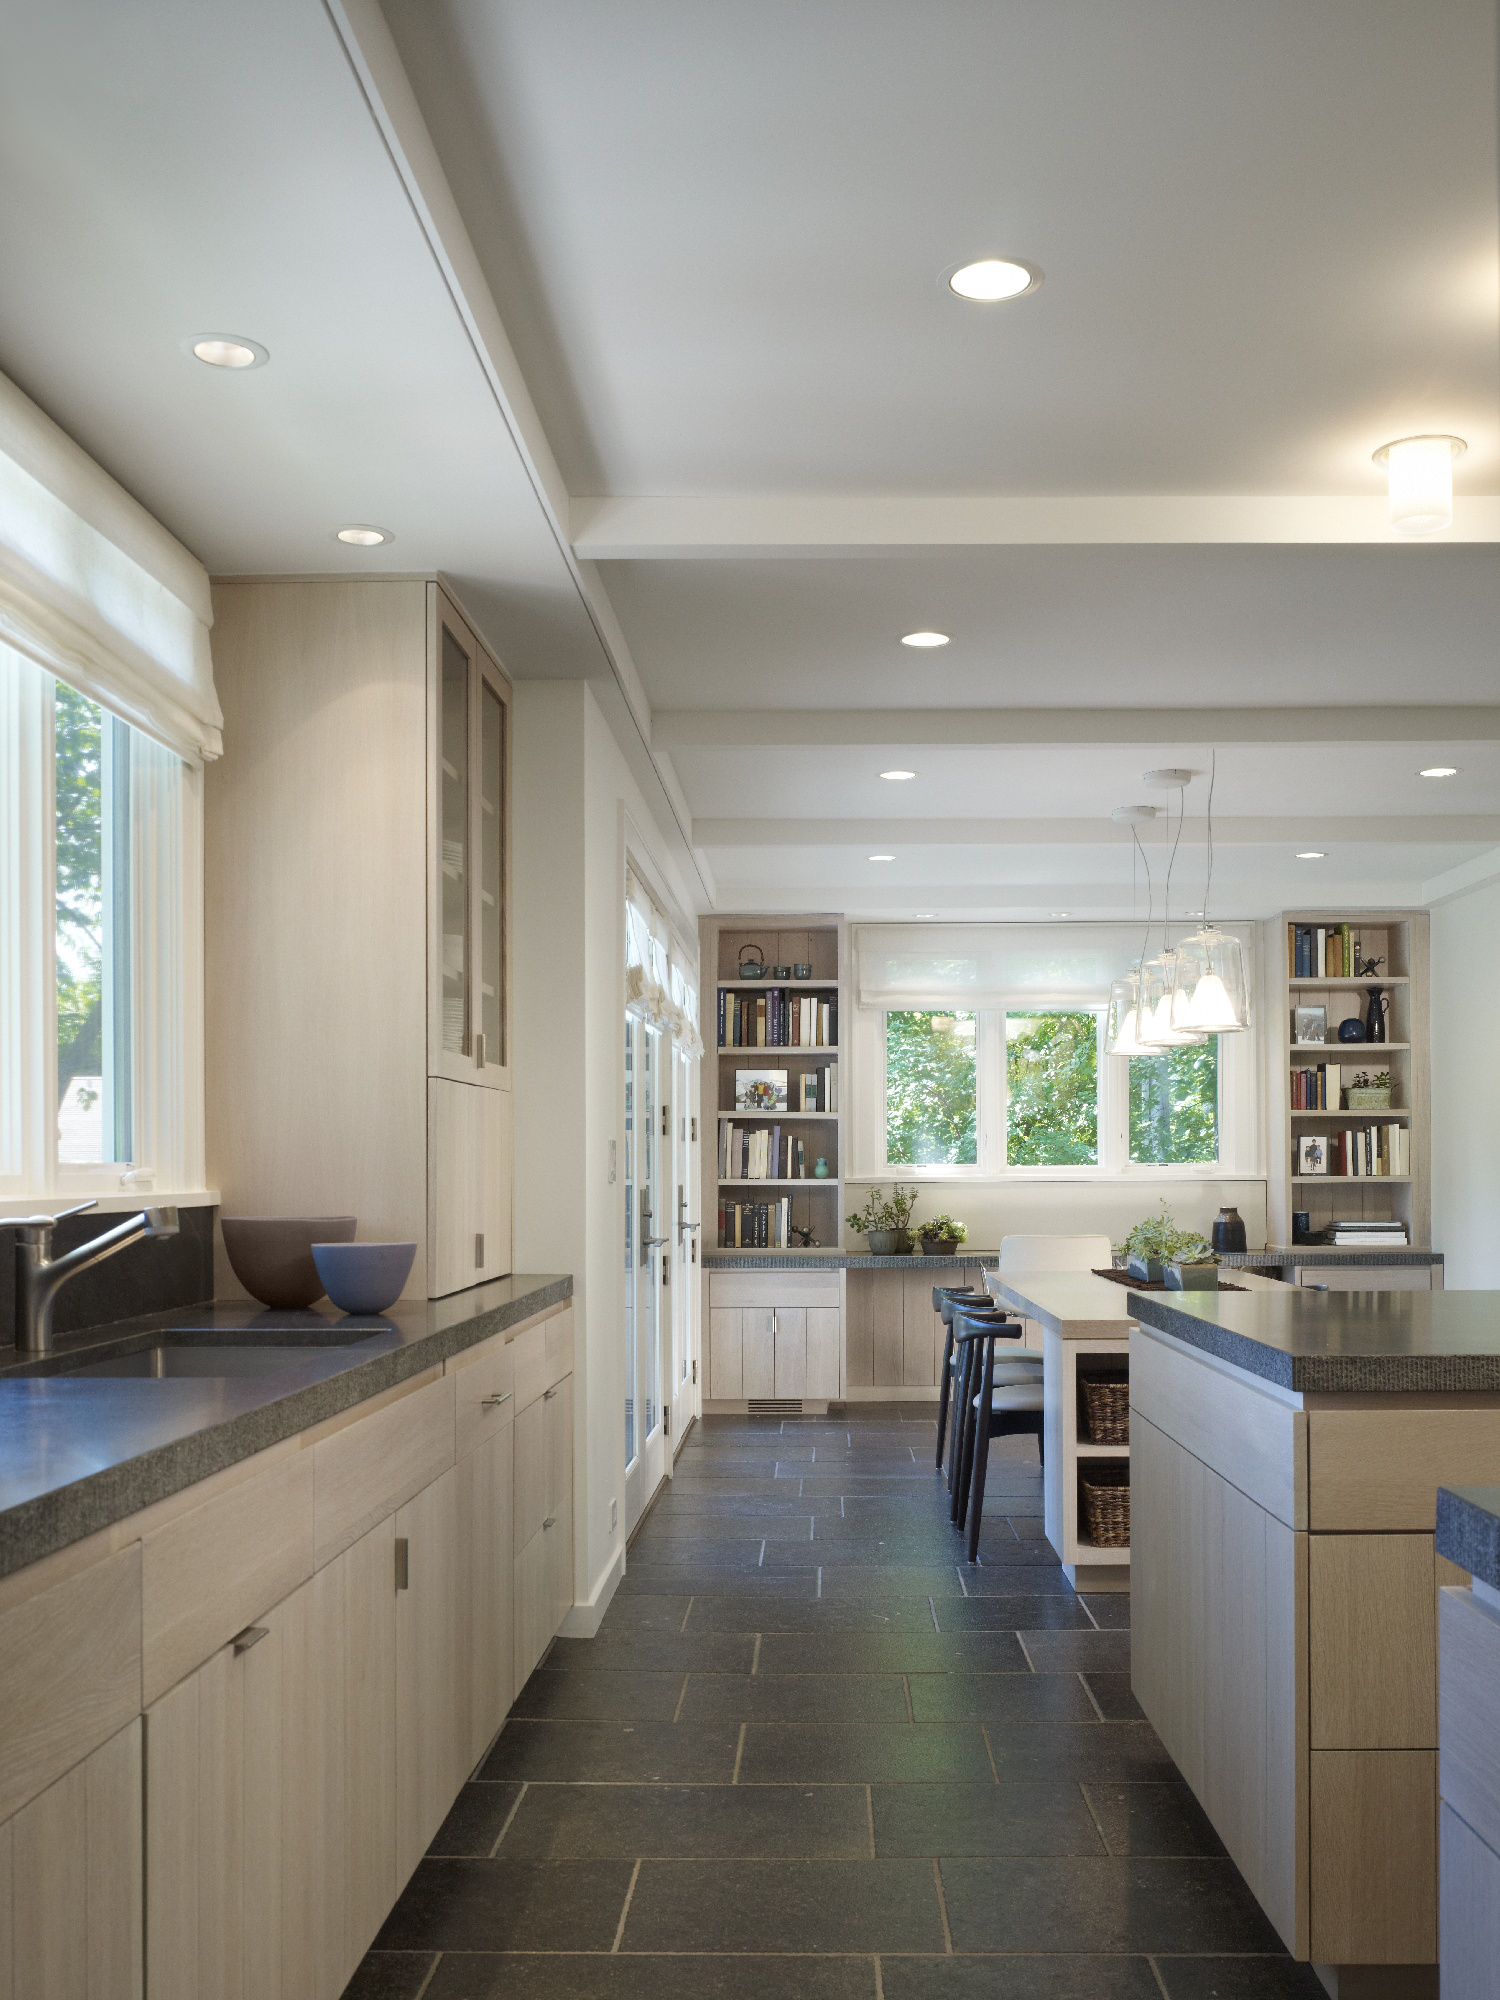 Farm house renovation - Tongue and Groove cabinets with dark limestone floors by Robbins Architecture